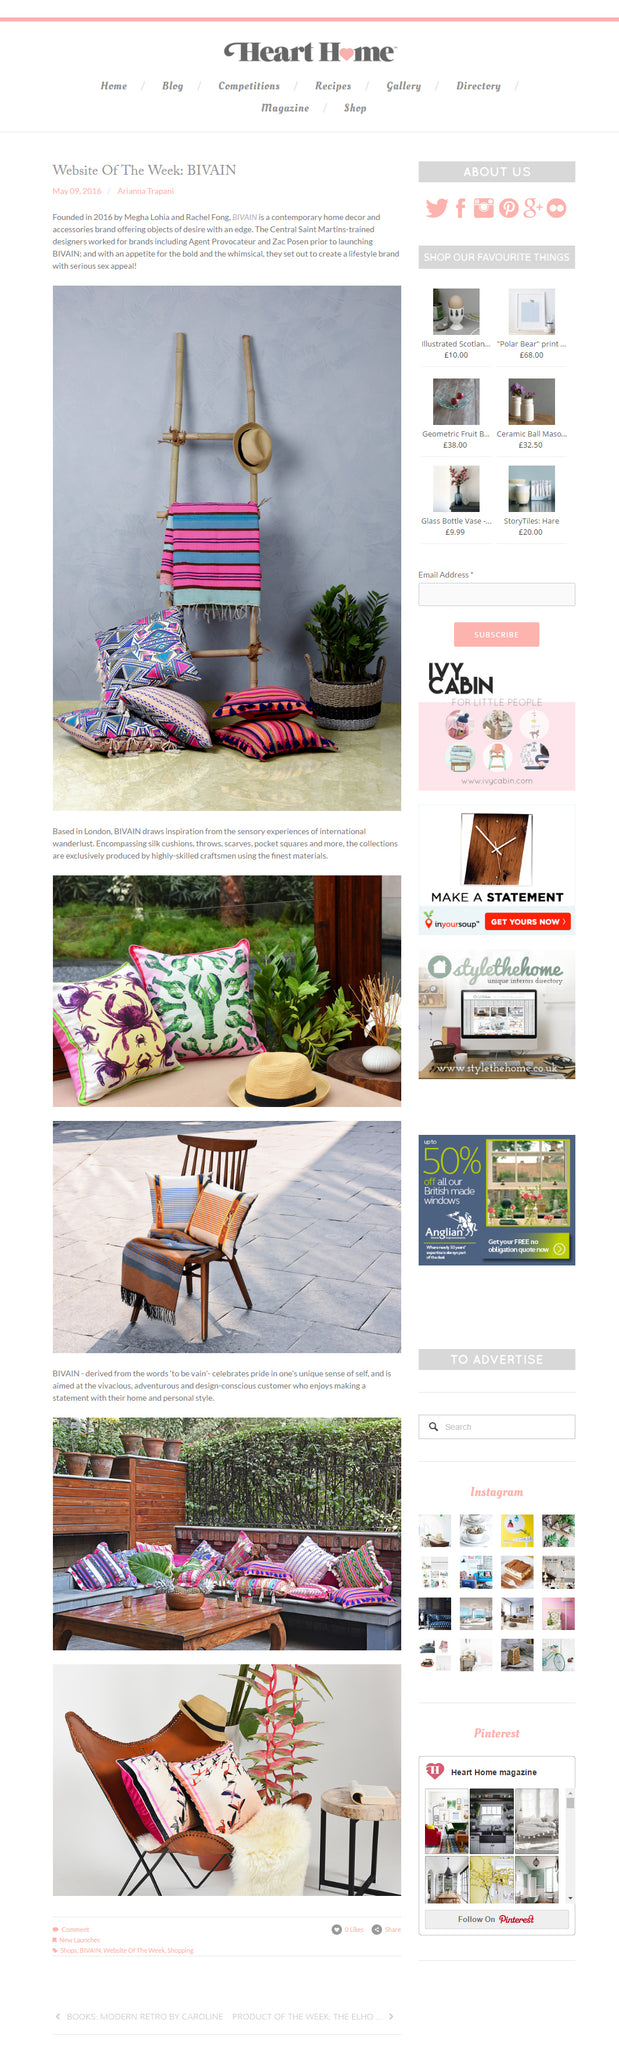 Bivain Heart Home mag